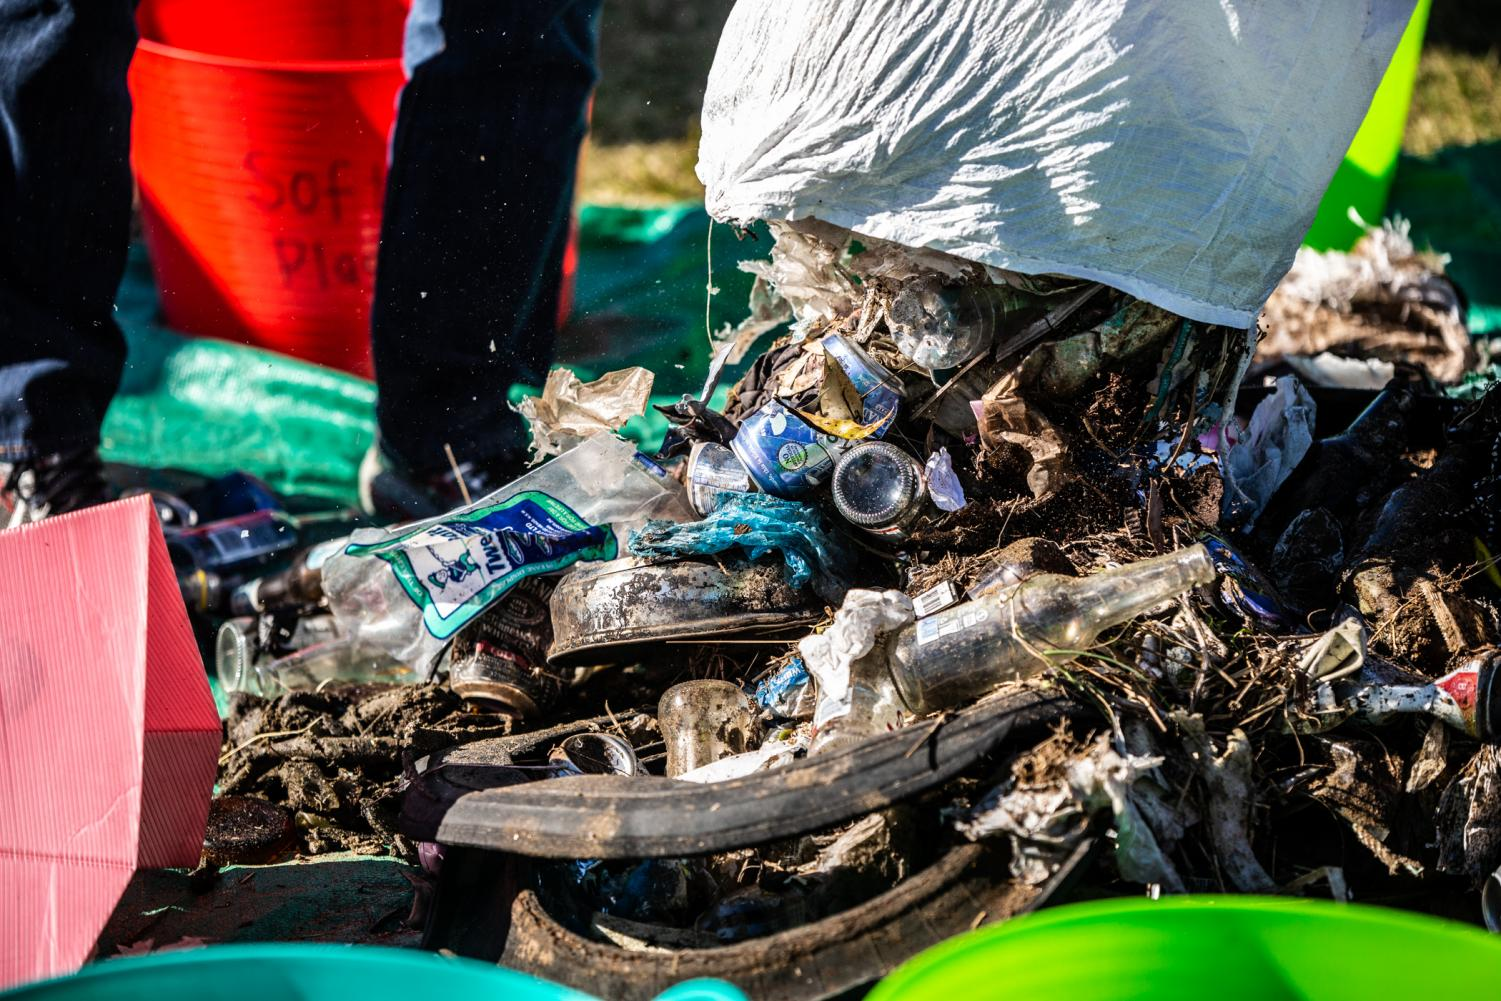 Plastic, glass, aluminium cans and other waste collected at Nudgee Beach in Brisbane during the Sea Shepherd clean-up